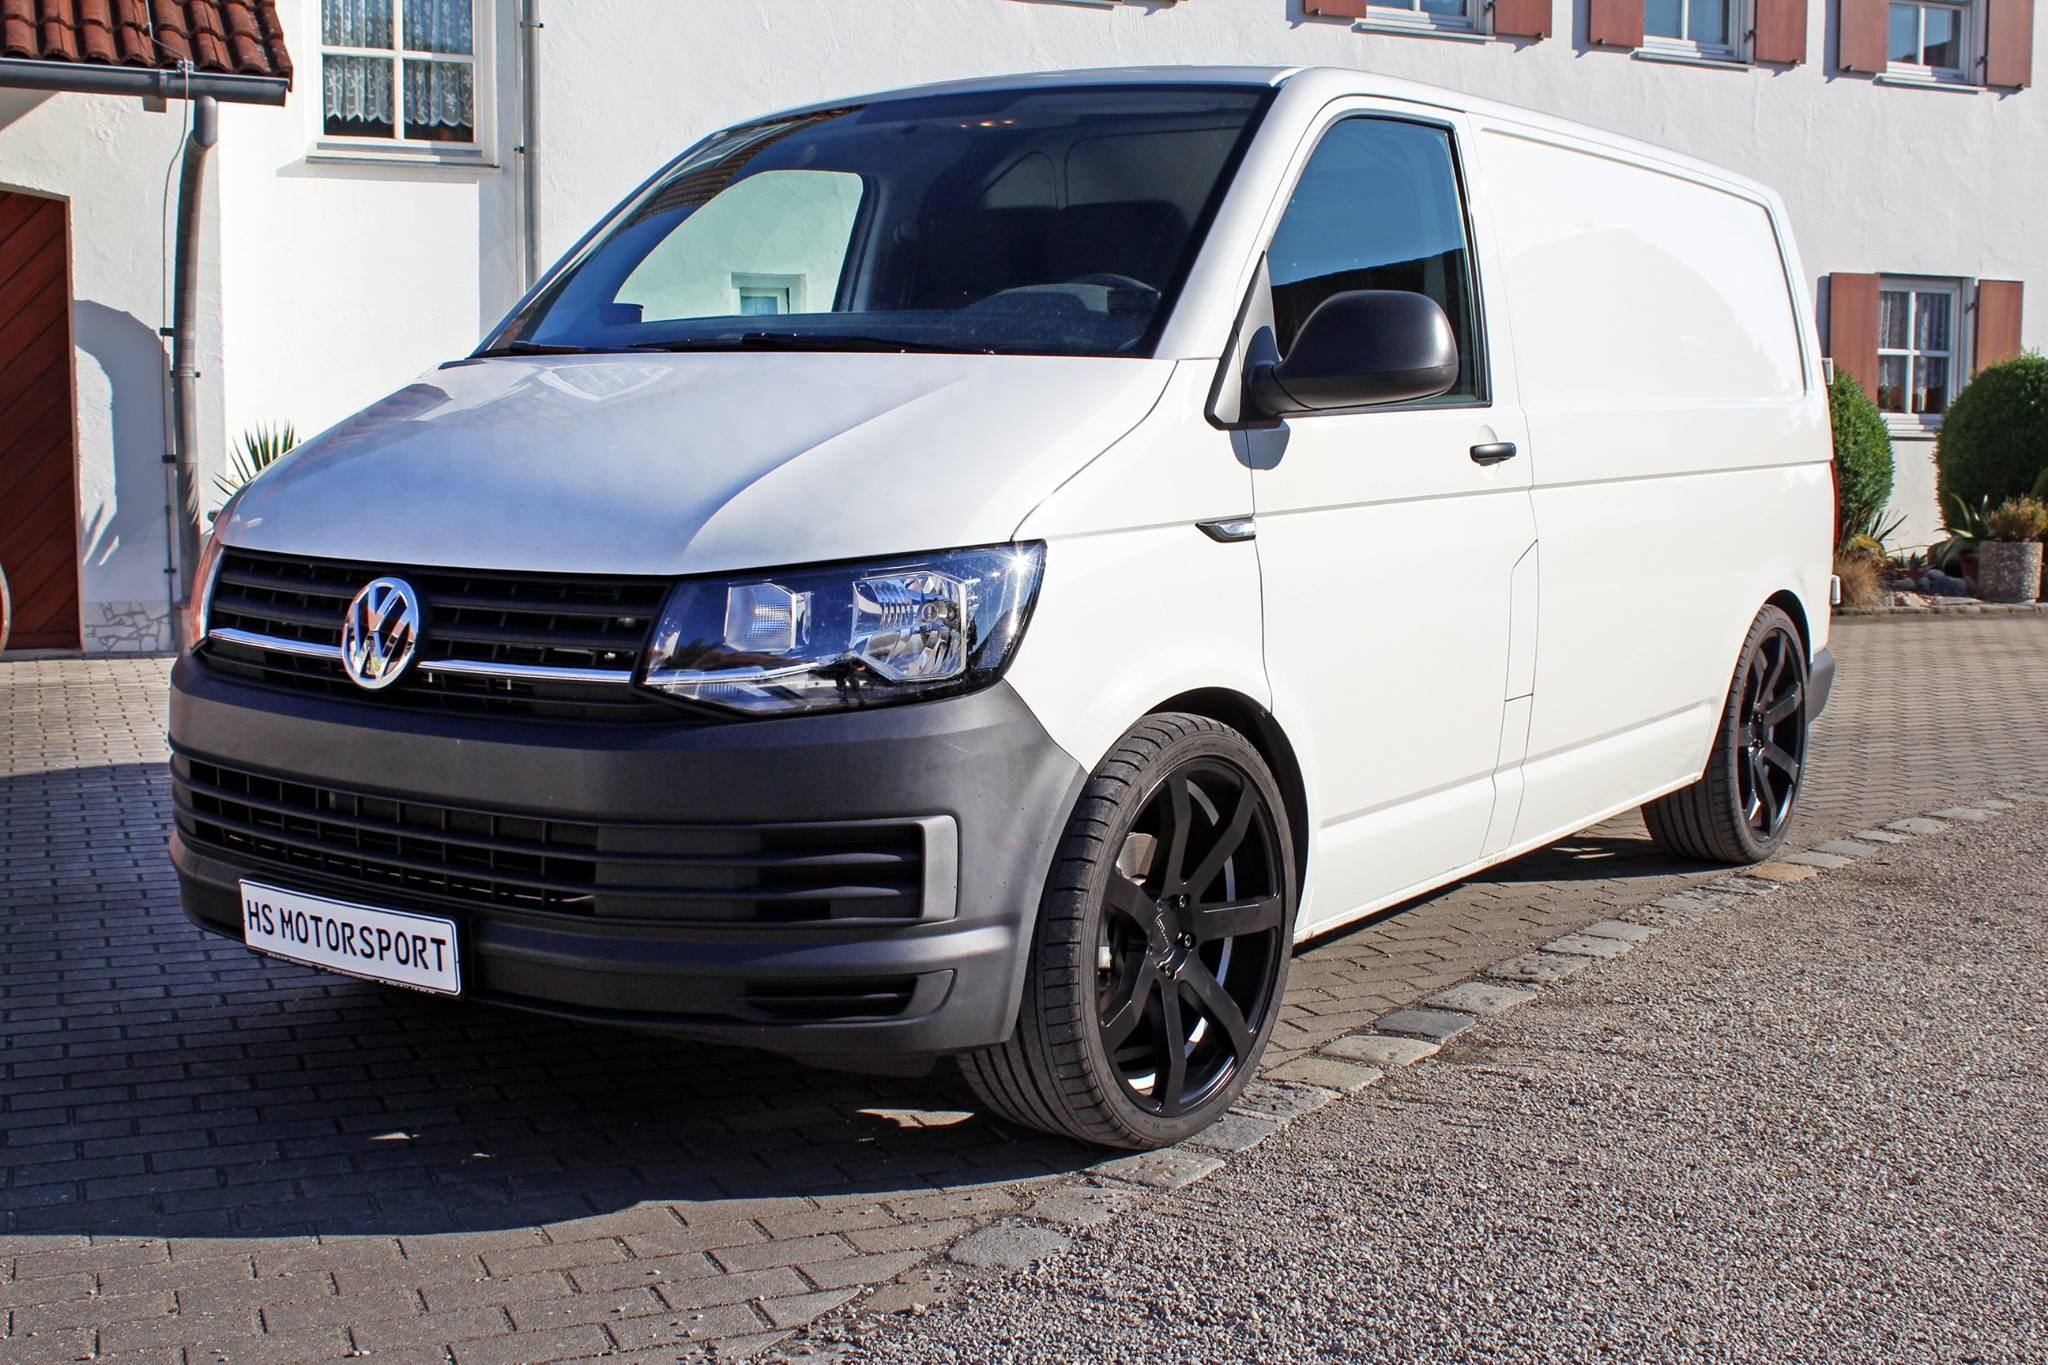 volkswagen t6 transporter 2 0 tdi tuned by hs motorsport autoevolution. Black Bedroom Furniture Sets. Home Design Ideas